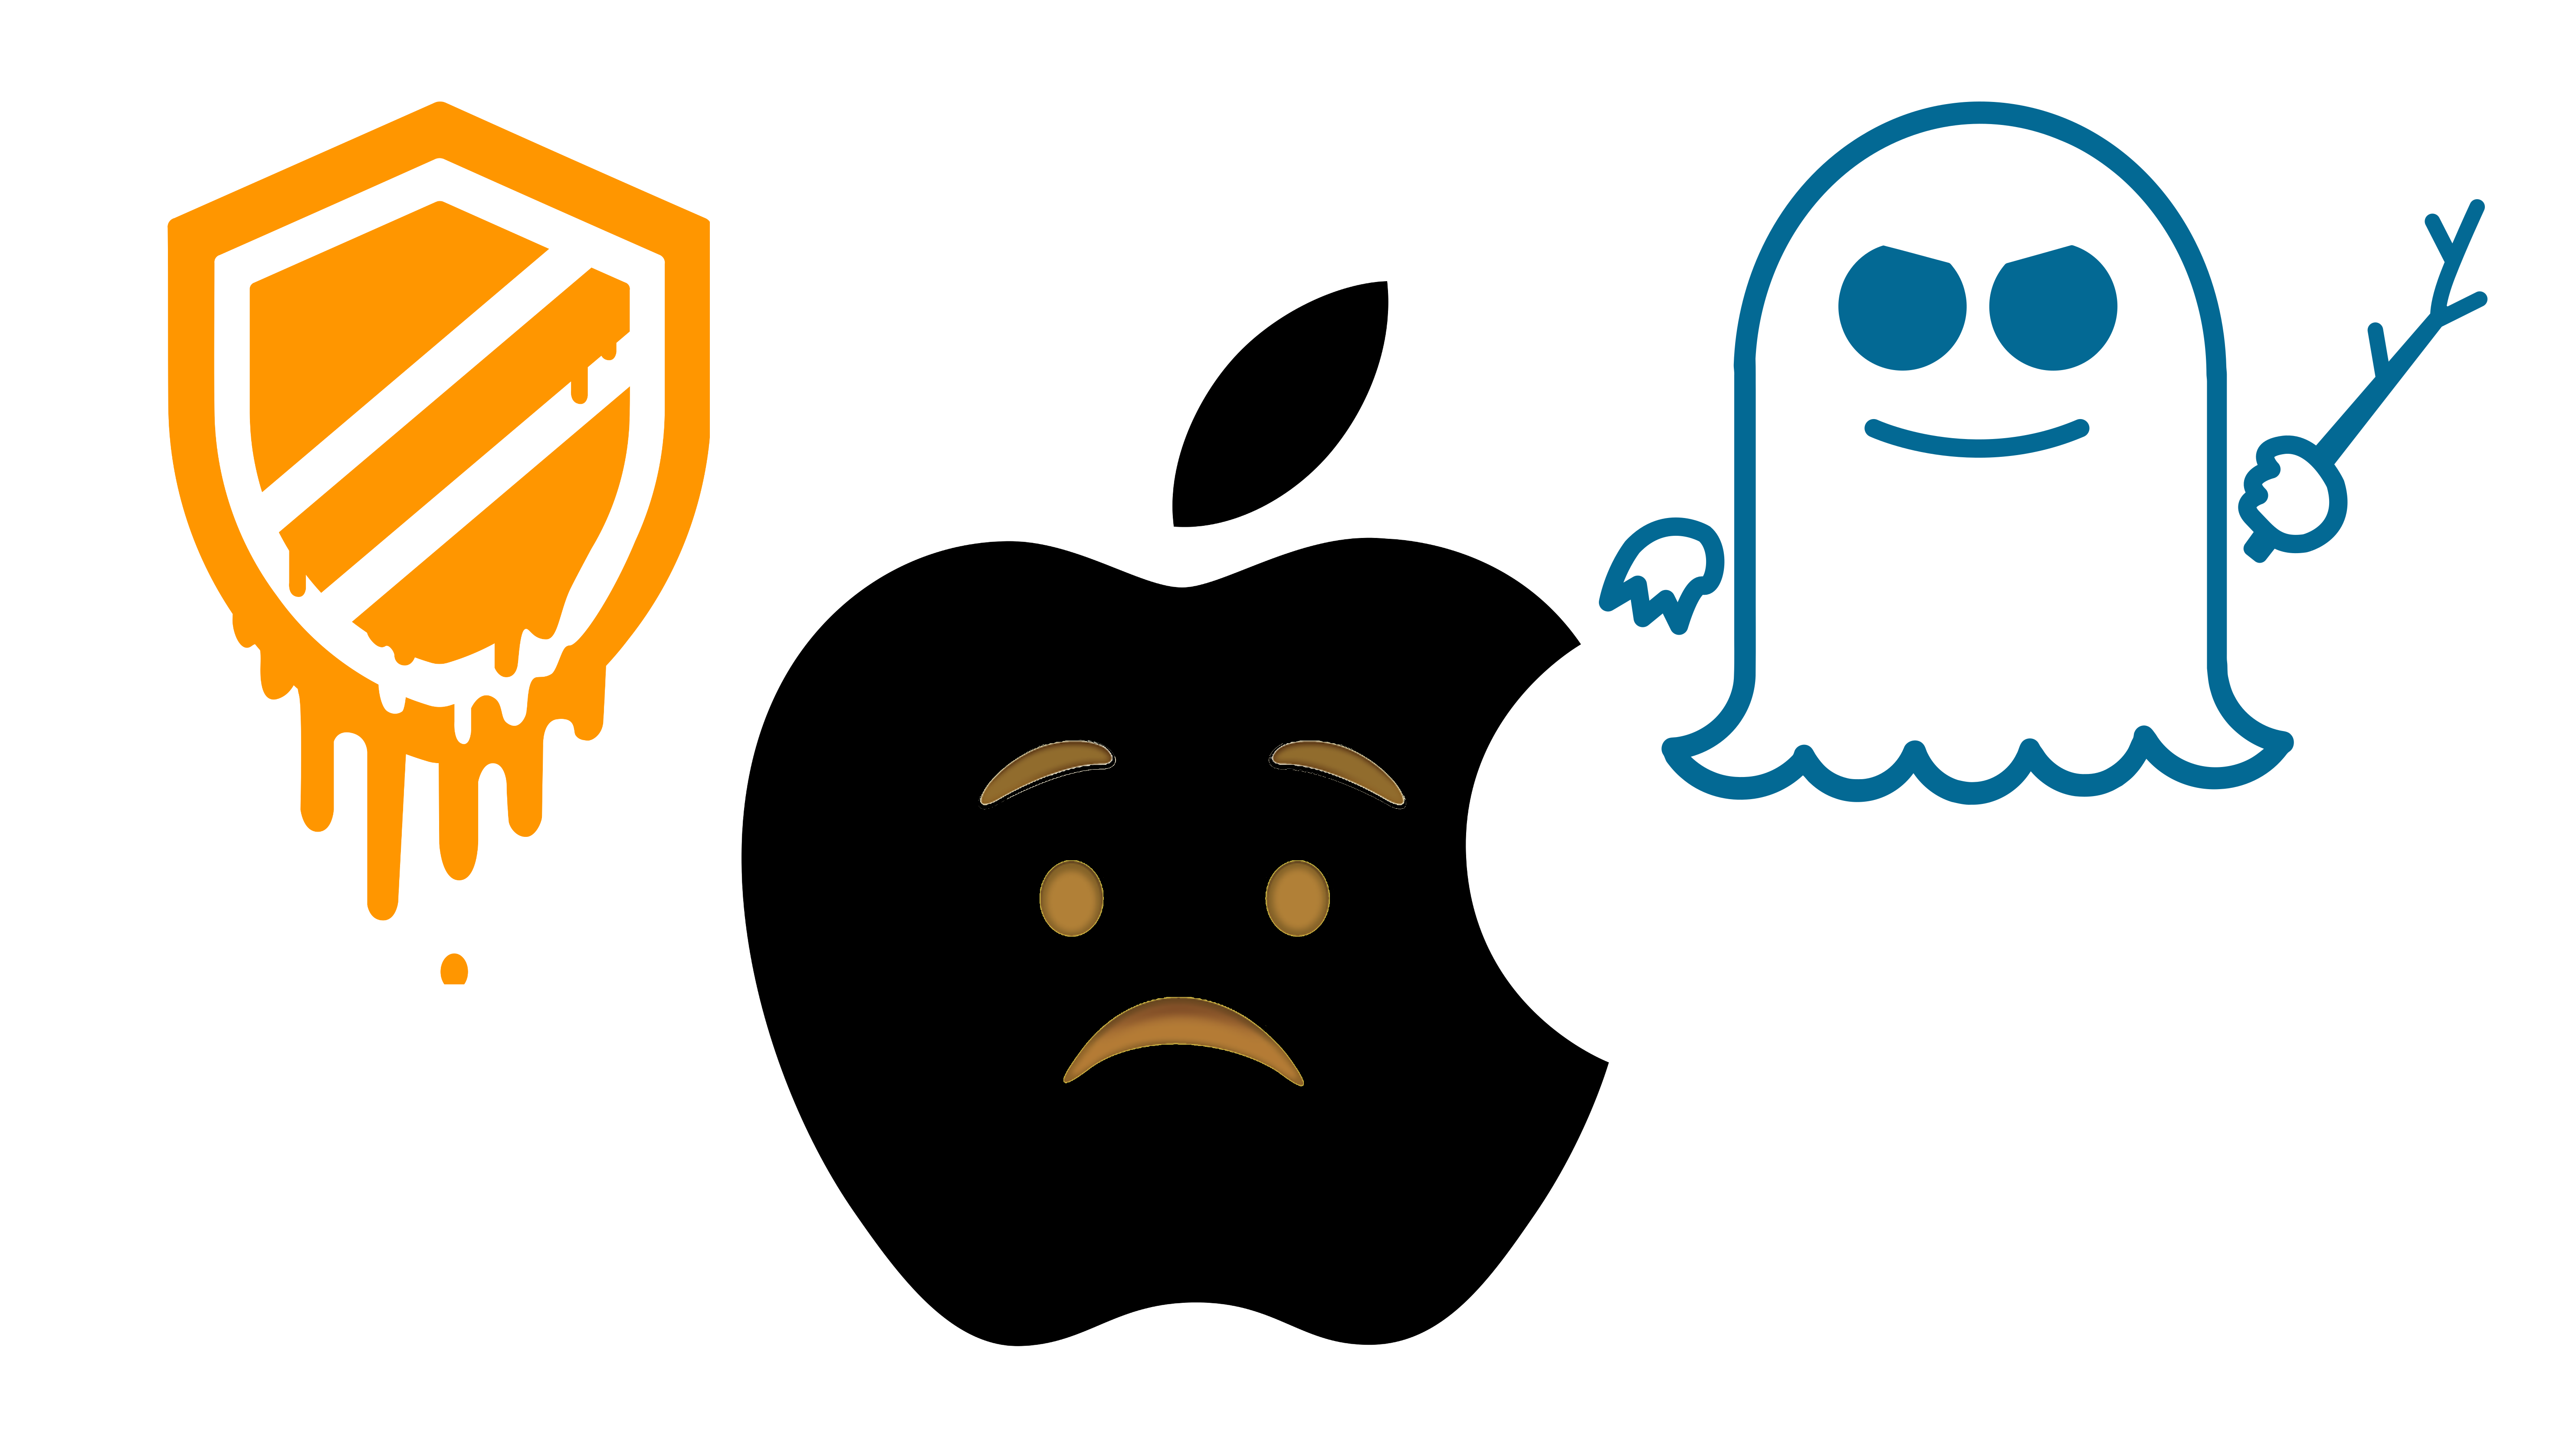 Free clipart for mac users graphic black and white library Meltdown and Spectre: What Apple users need to know | The Mac ... graphic black and white library